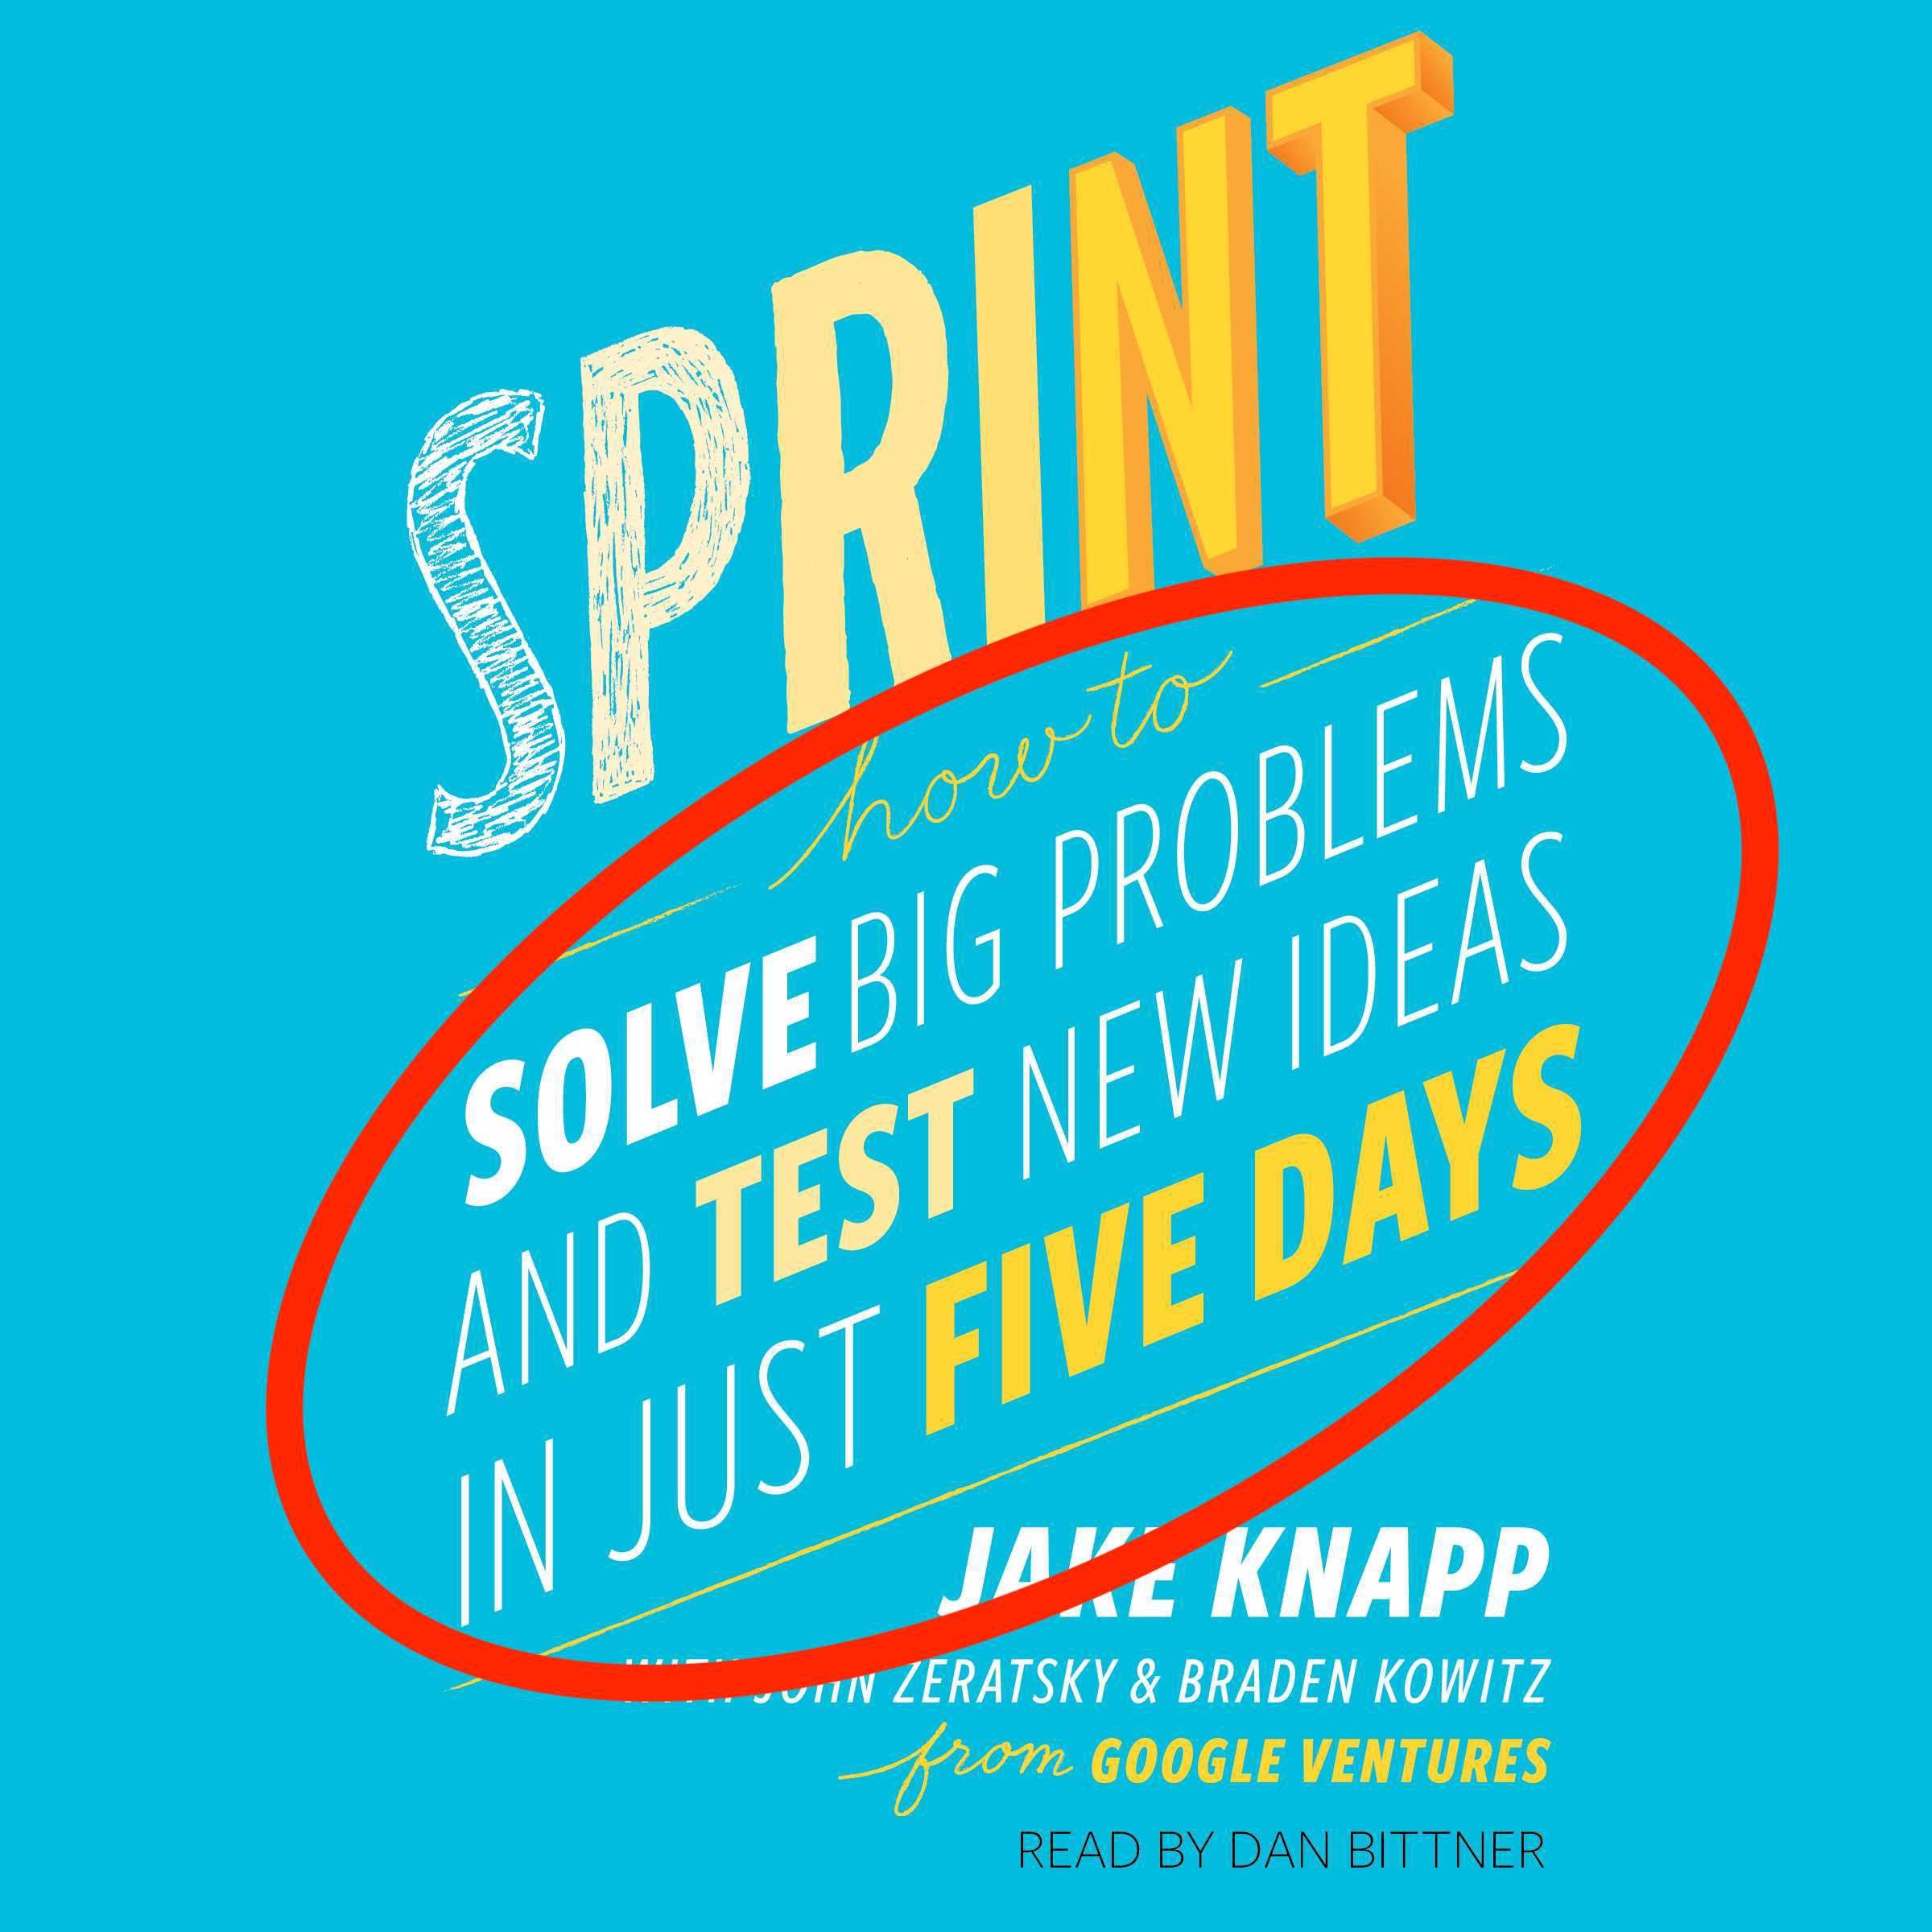 solving problems with design thinking epub